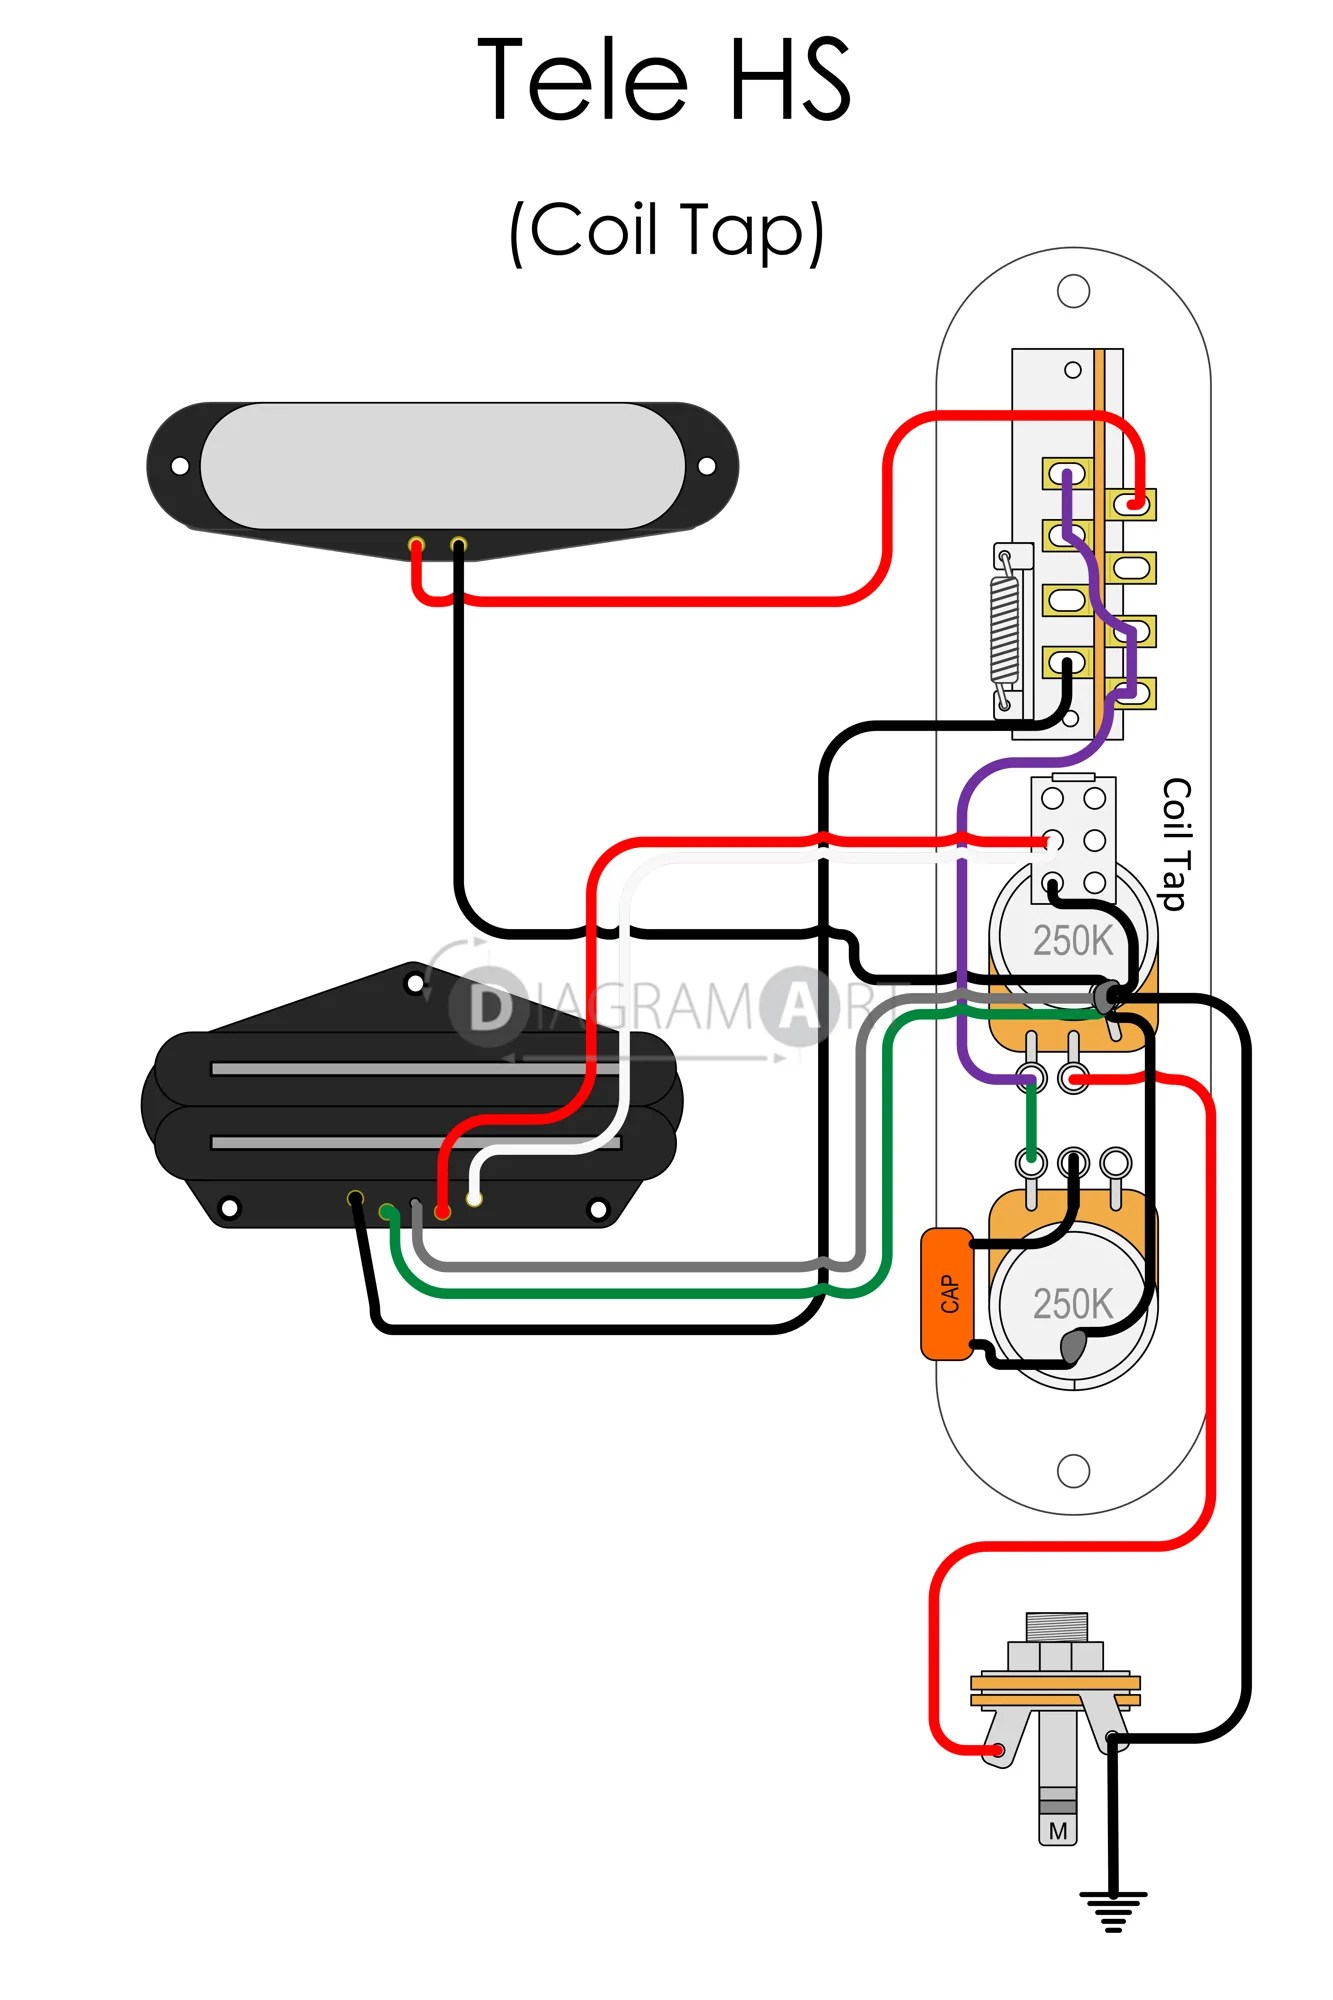 small resolution of electric guitar wiring tele hs coil tap electric circuit dimarzio coil tap wiring diagram coil tap diagram